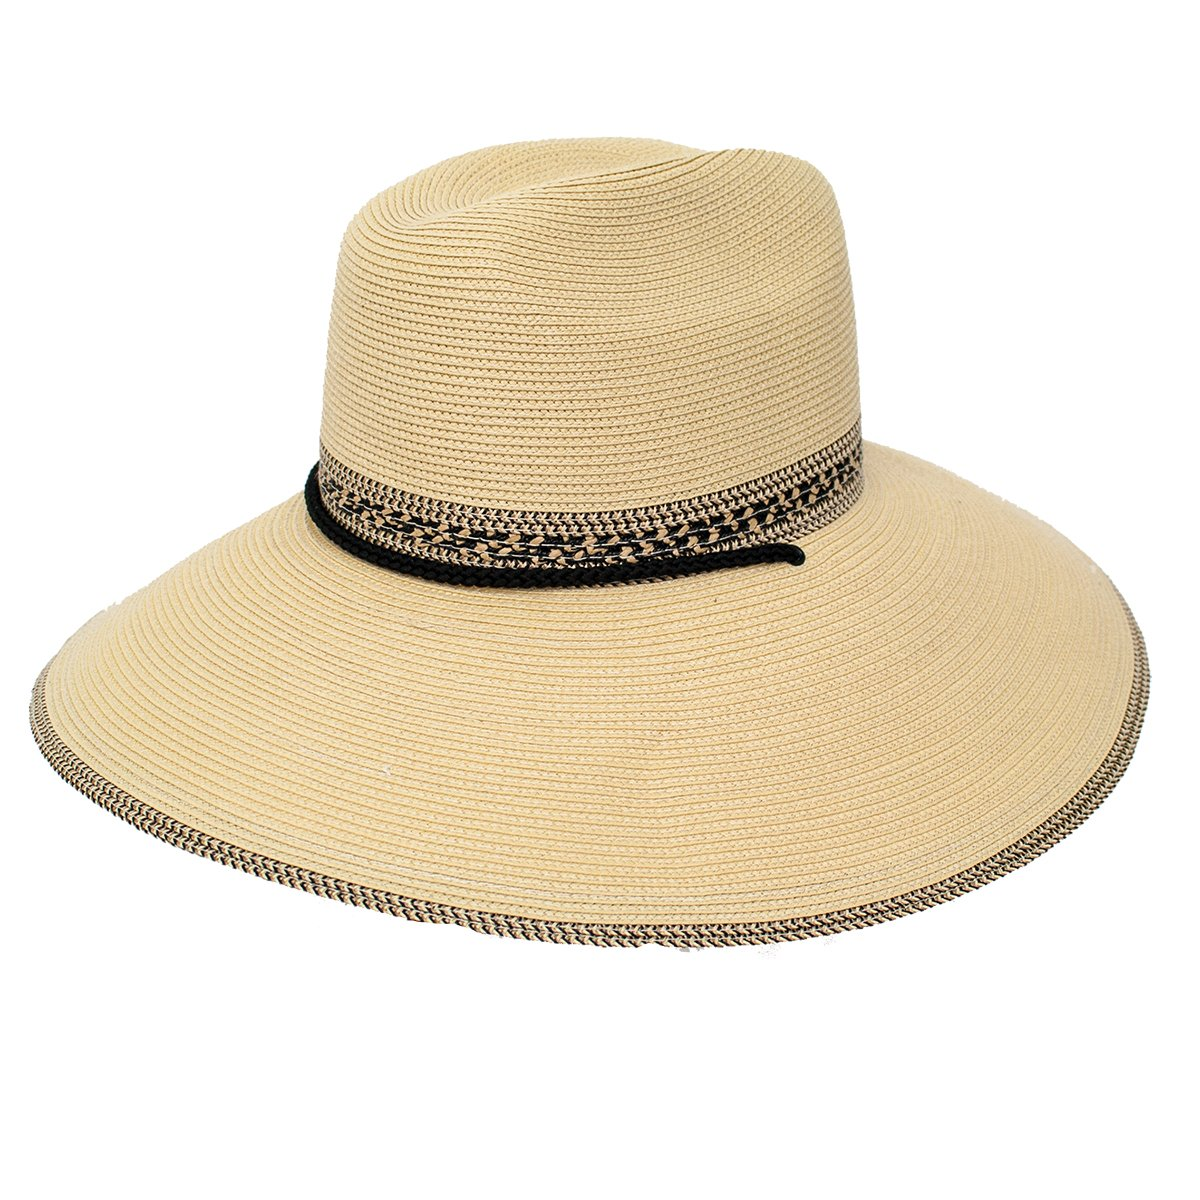 Peter Grimm Womens Namo Lifeguard Hat Ivory